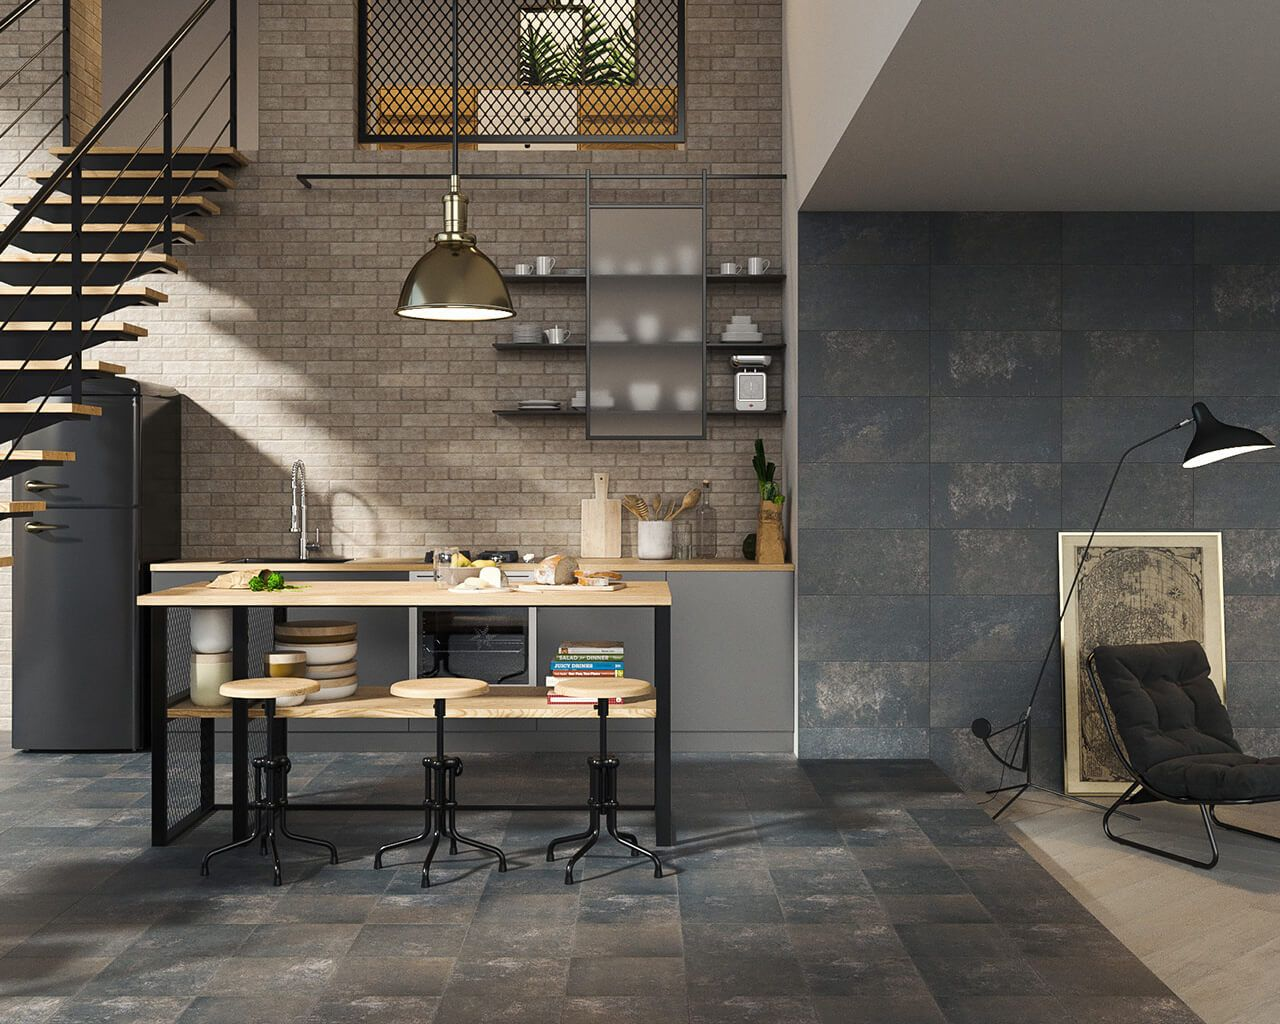 Remarkable Living Room With A Kitchenette In The Industrial Style Interior Design Ideas Helimdqseriescom